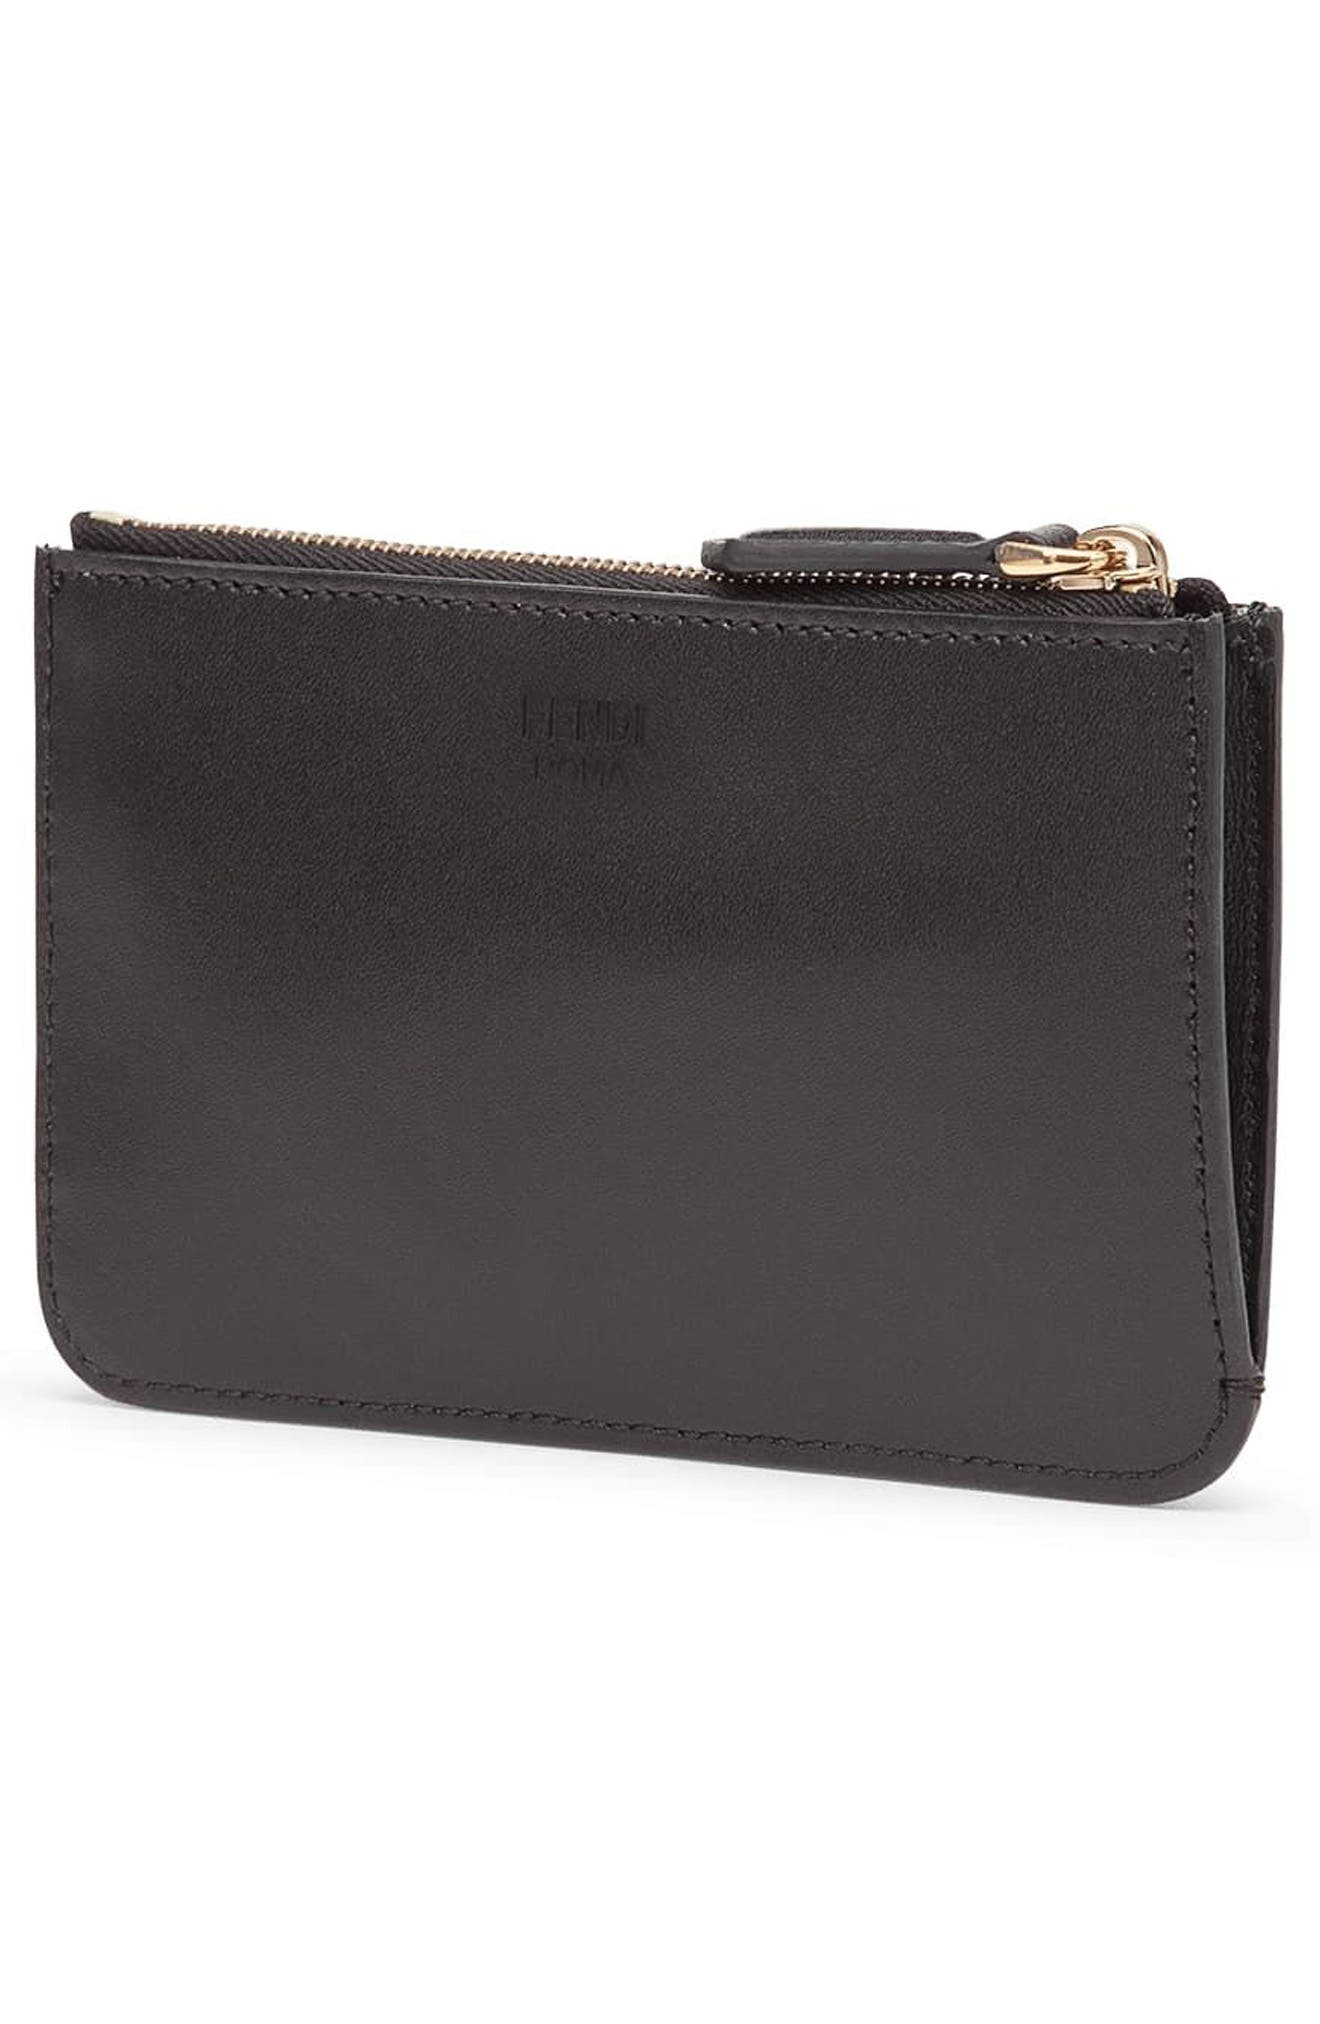 Monster Leather Key Pouch,                             Alternate thumbnail 3, color,                             Nero/ Oro Soft